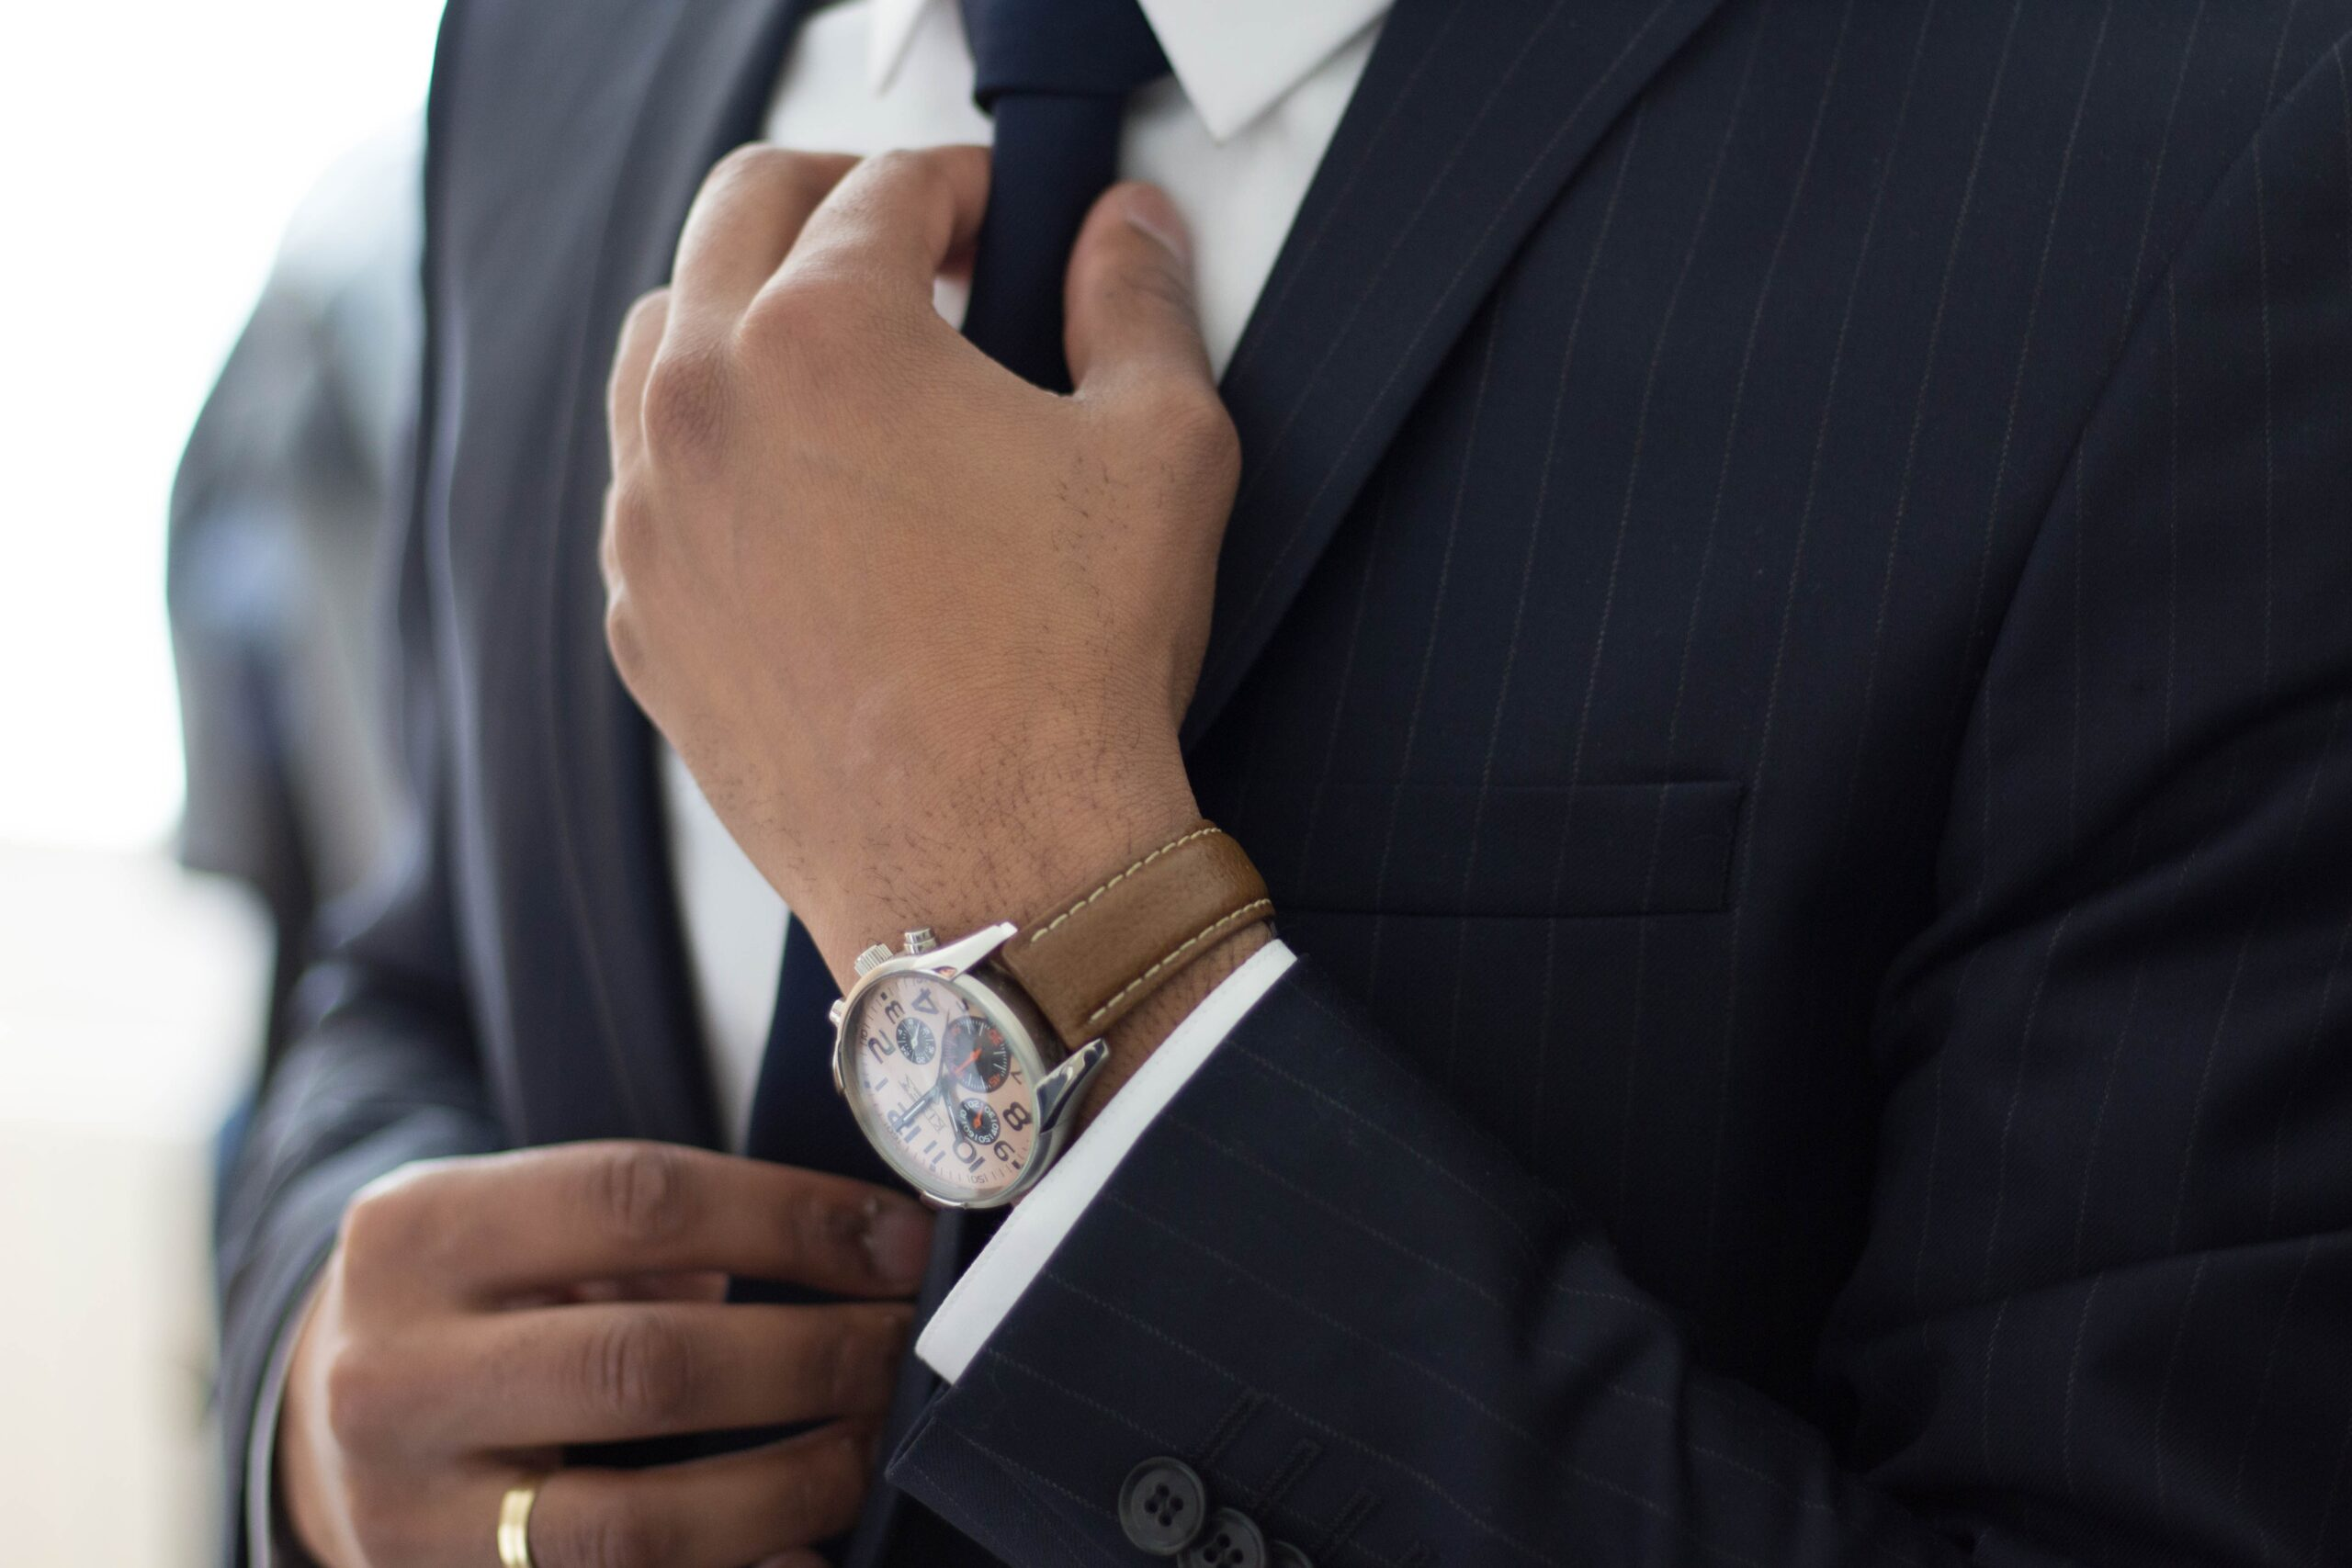 A close up of a man wearing a business suit's upper torso. A gold ring and wristwatch is clearly visible as he adjusts his tie.